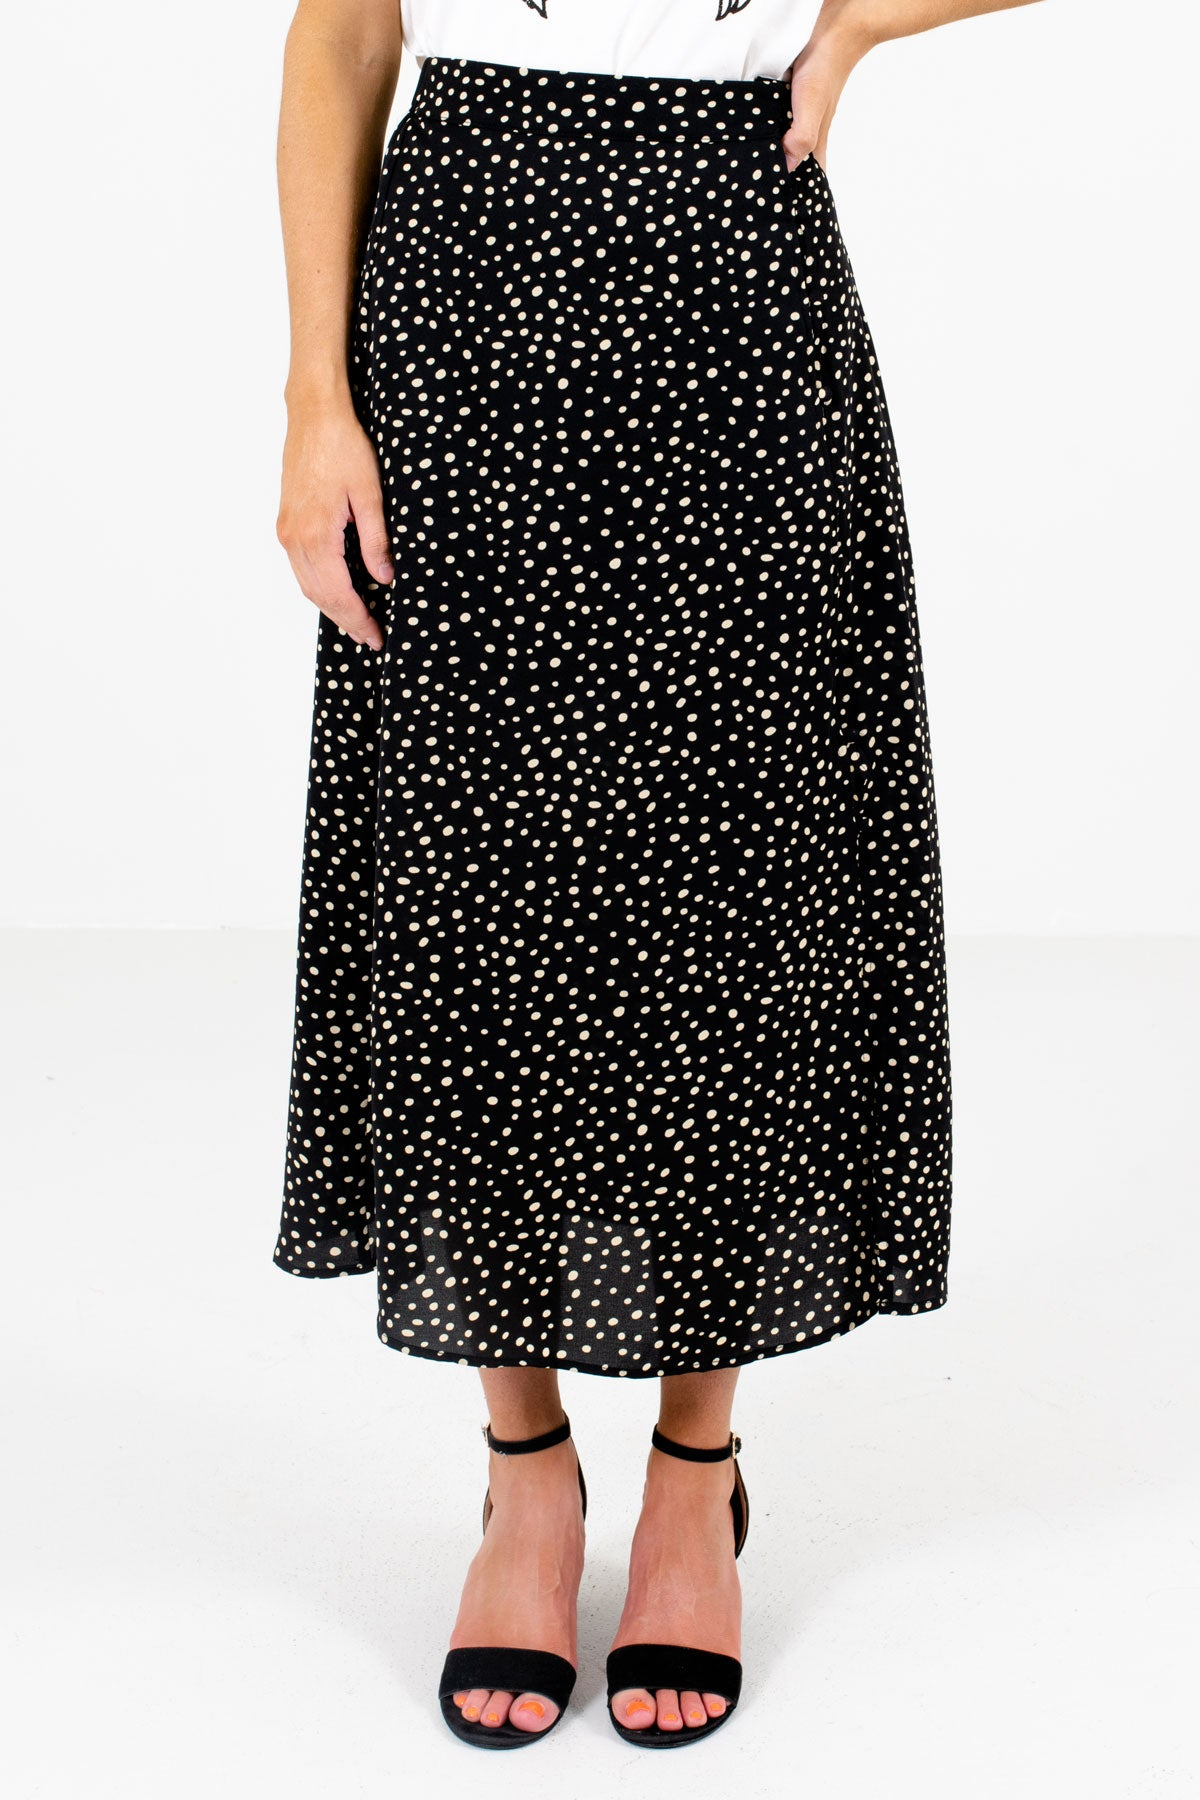 Black and Beige Polka Dot Patterned Boutique Midi Skirts for Women